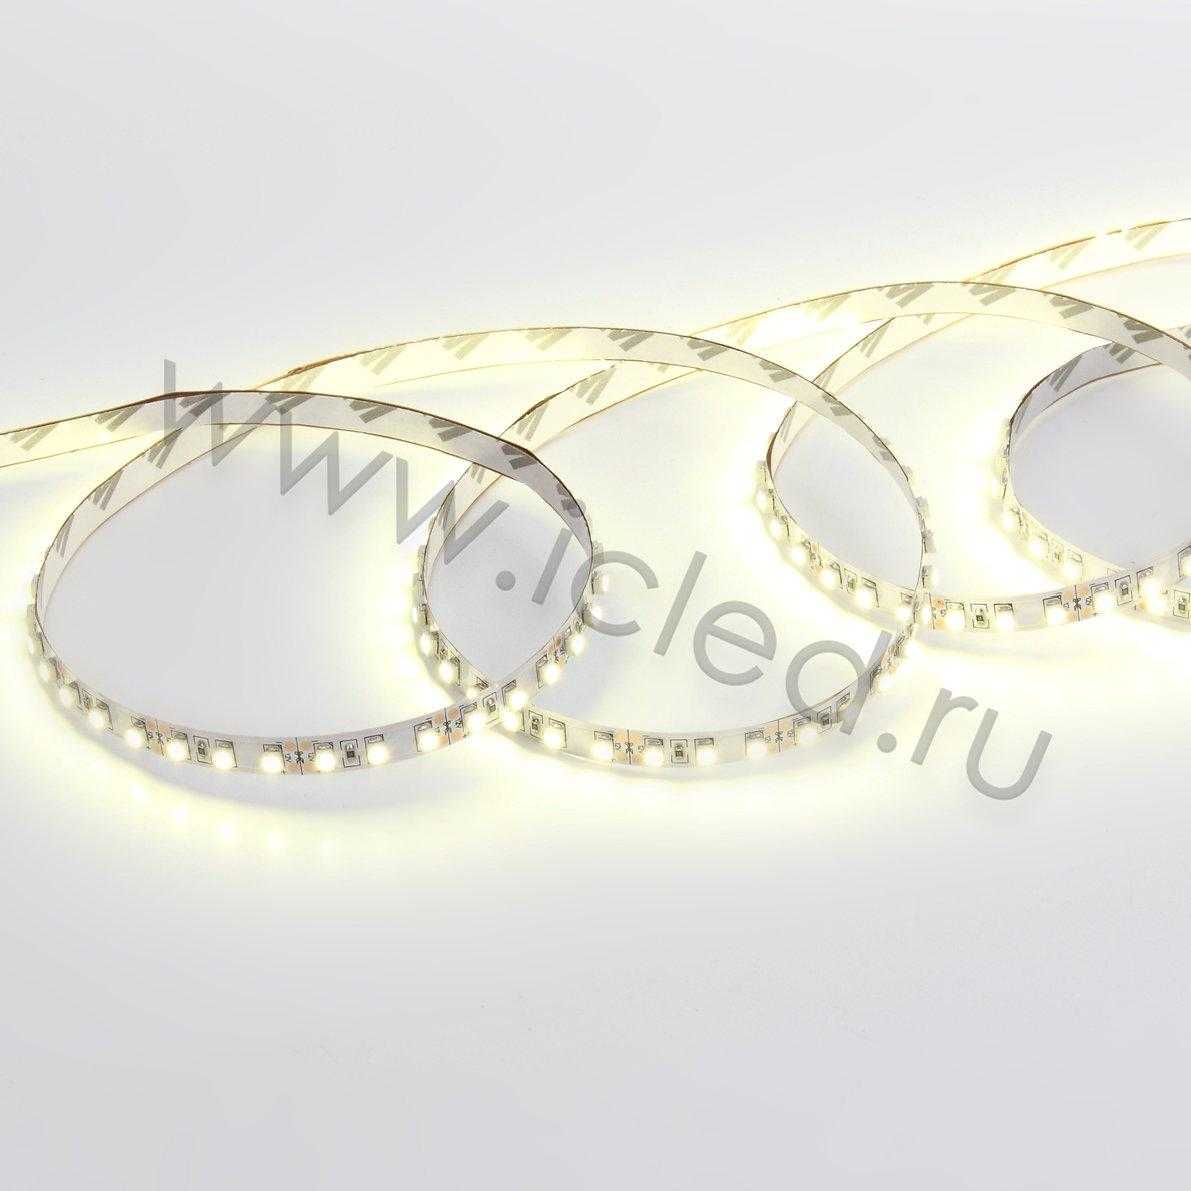 Светодиодная лента Standart class 3528,120led/m, Day White, 12V, IP33, G180